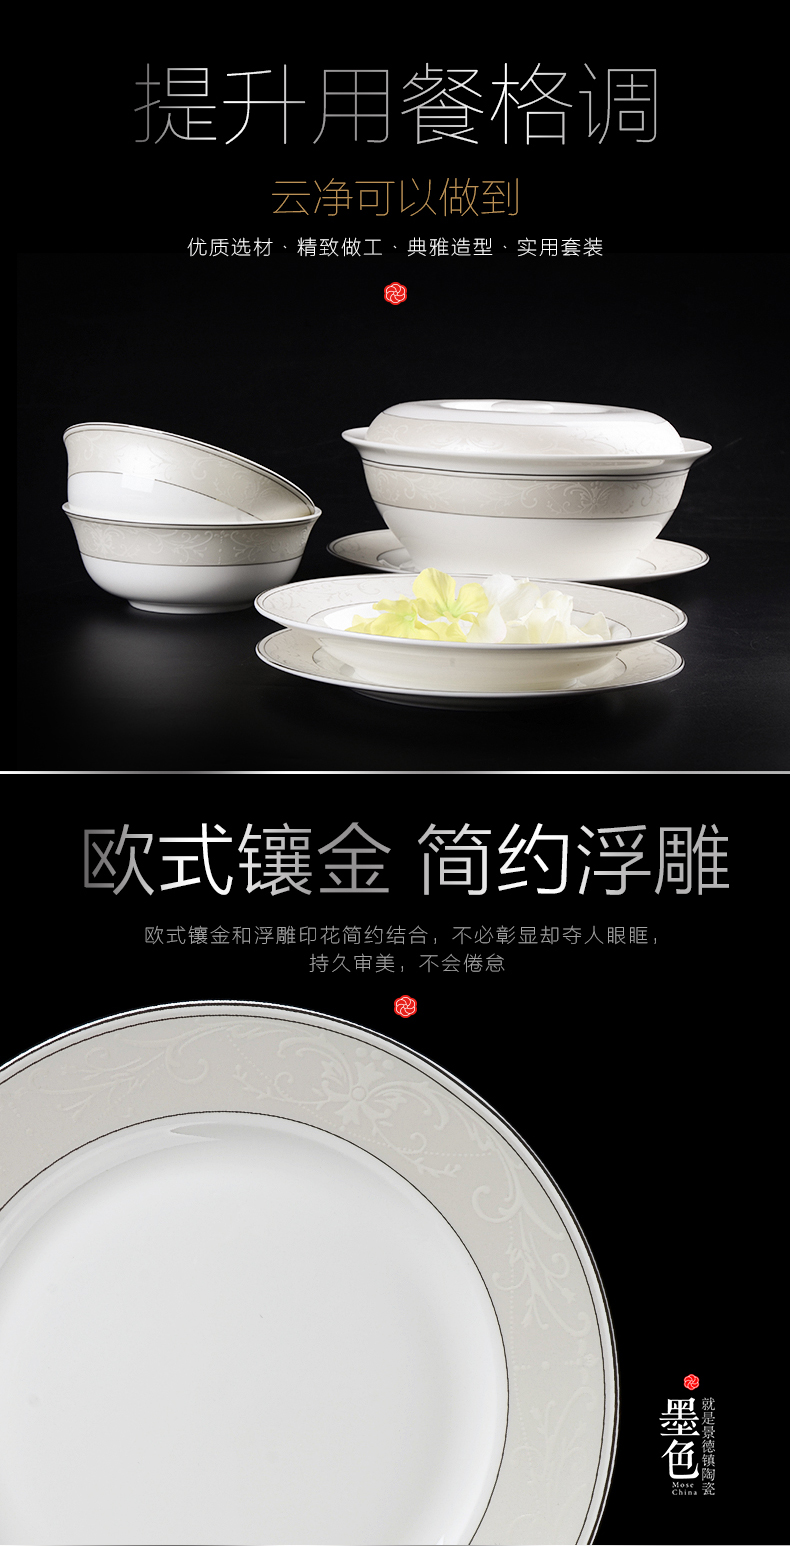 Buy The black cloud net 22 Jingdezhen ceramic tableware bowl dish bowl European bone china porcelain relief suit cheap